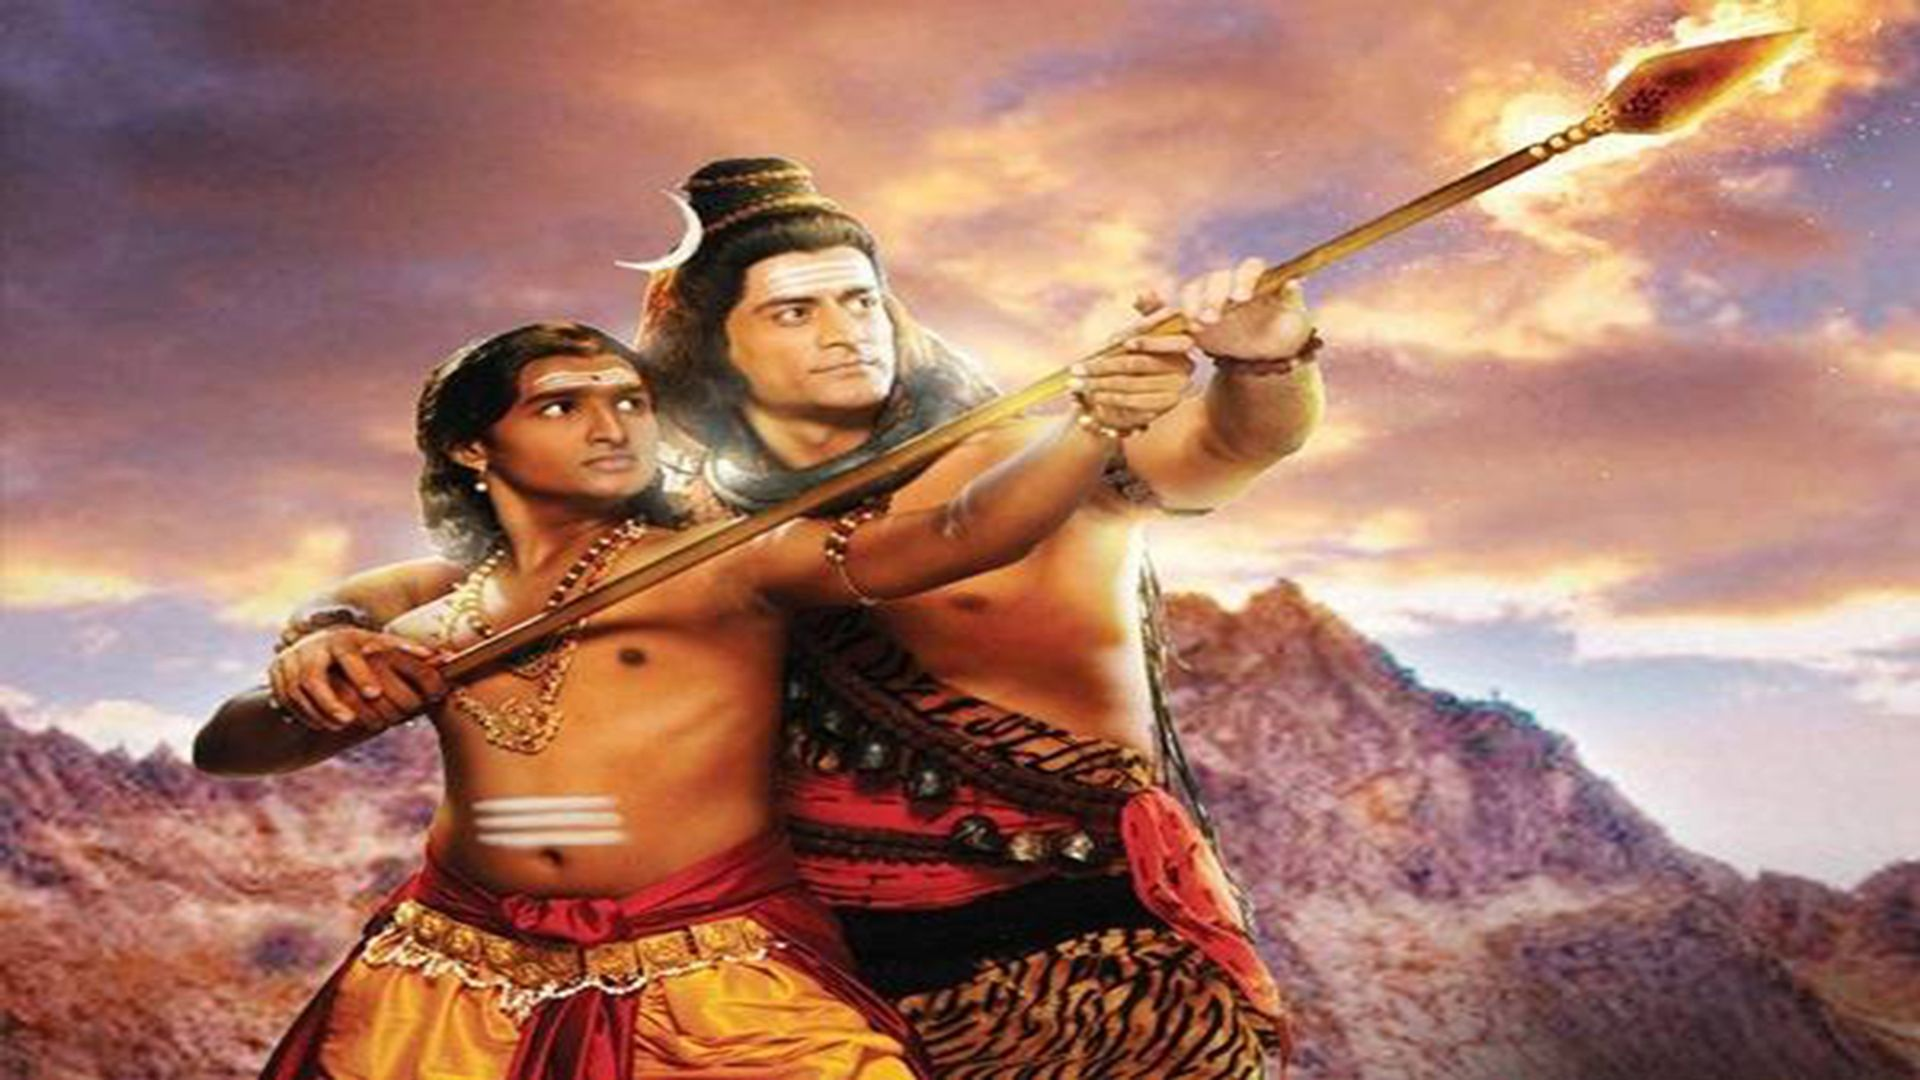 Season 18, Episode 04 Durgasur Attacks Mahadev